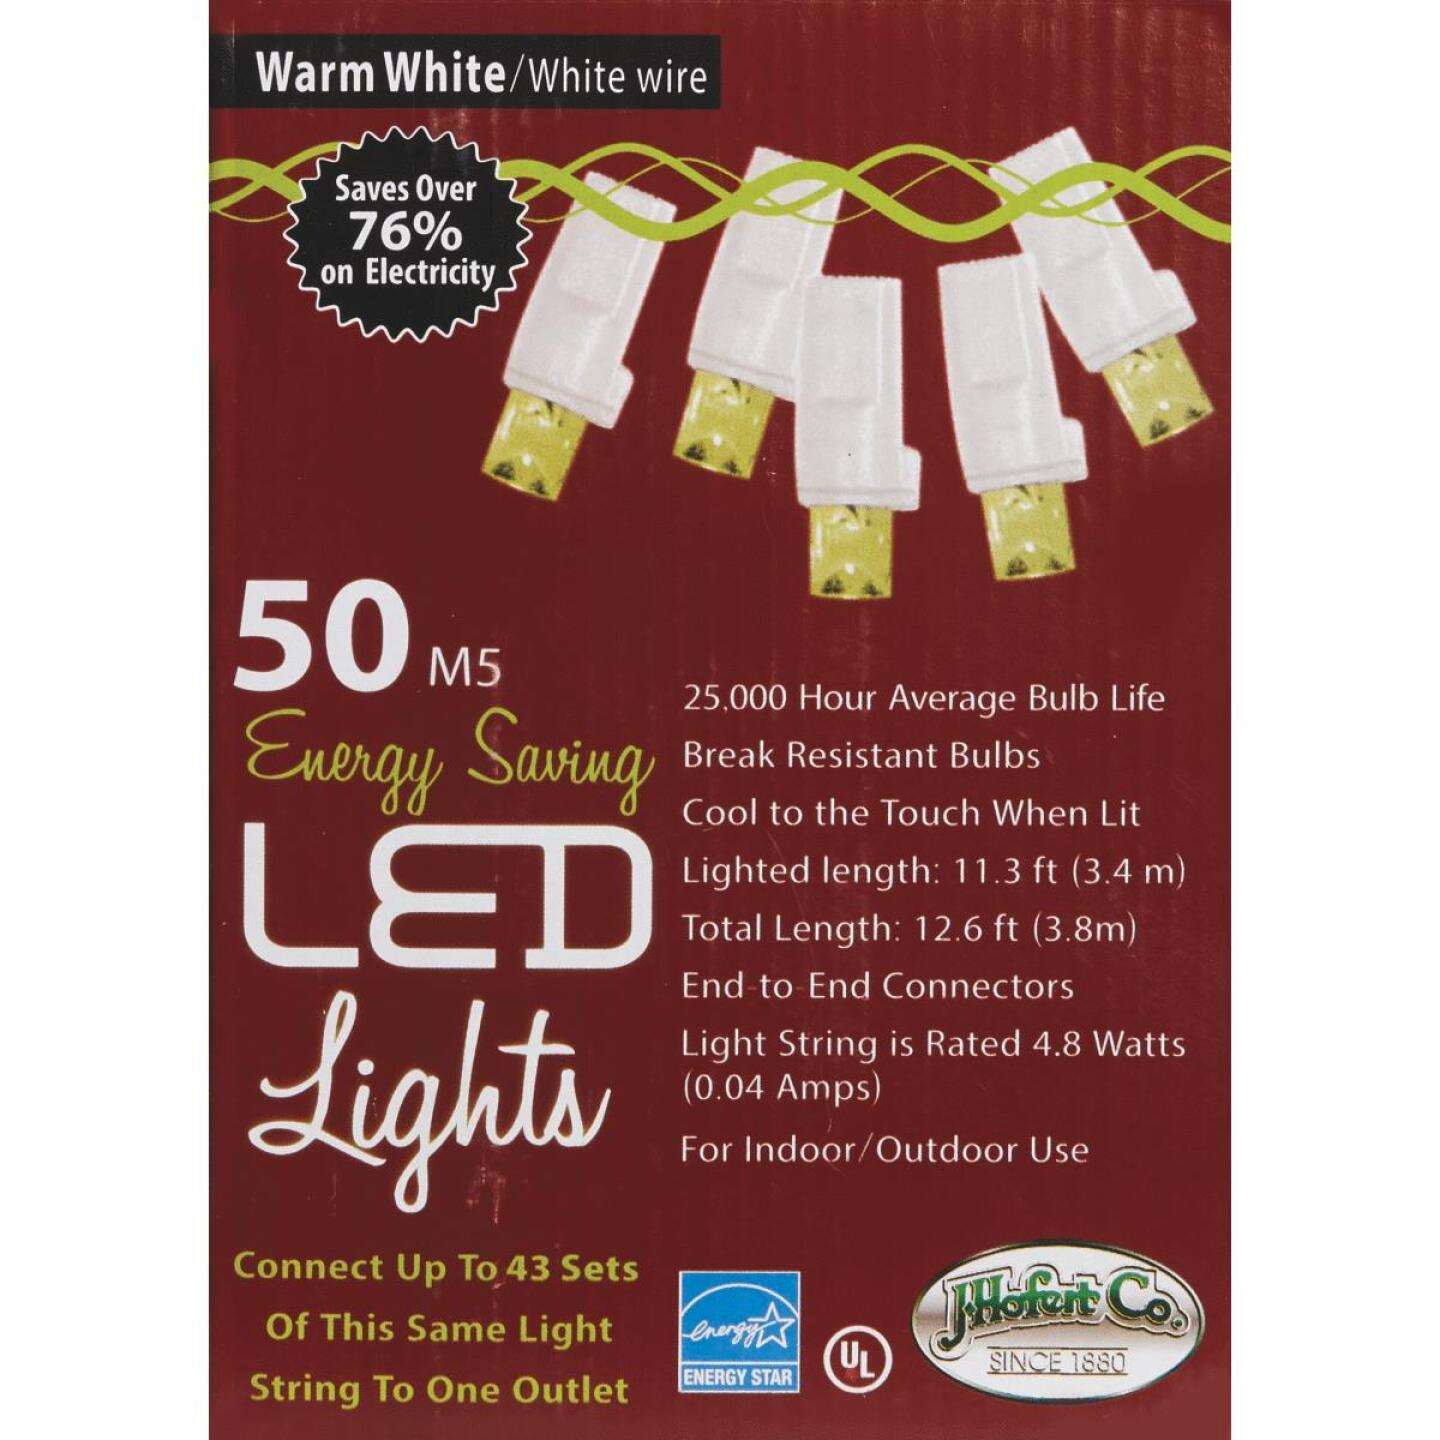 J Hofert Pure White 50-Bulb M5 LED Light Set with White Wire Image 2